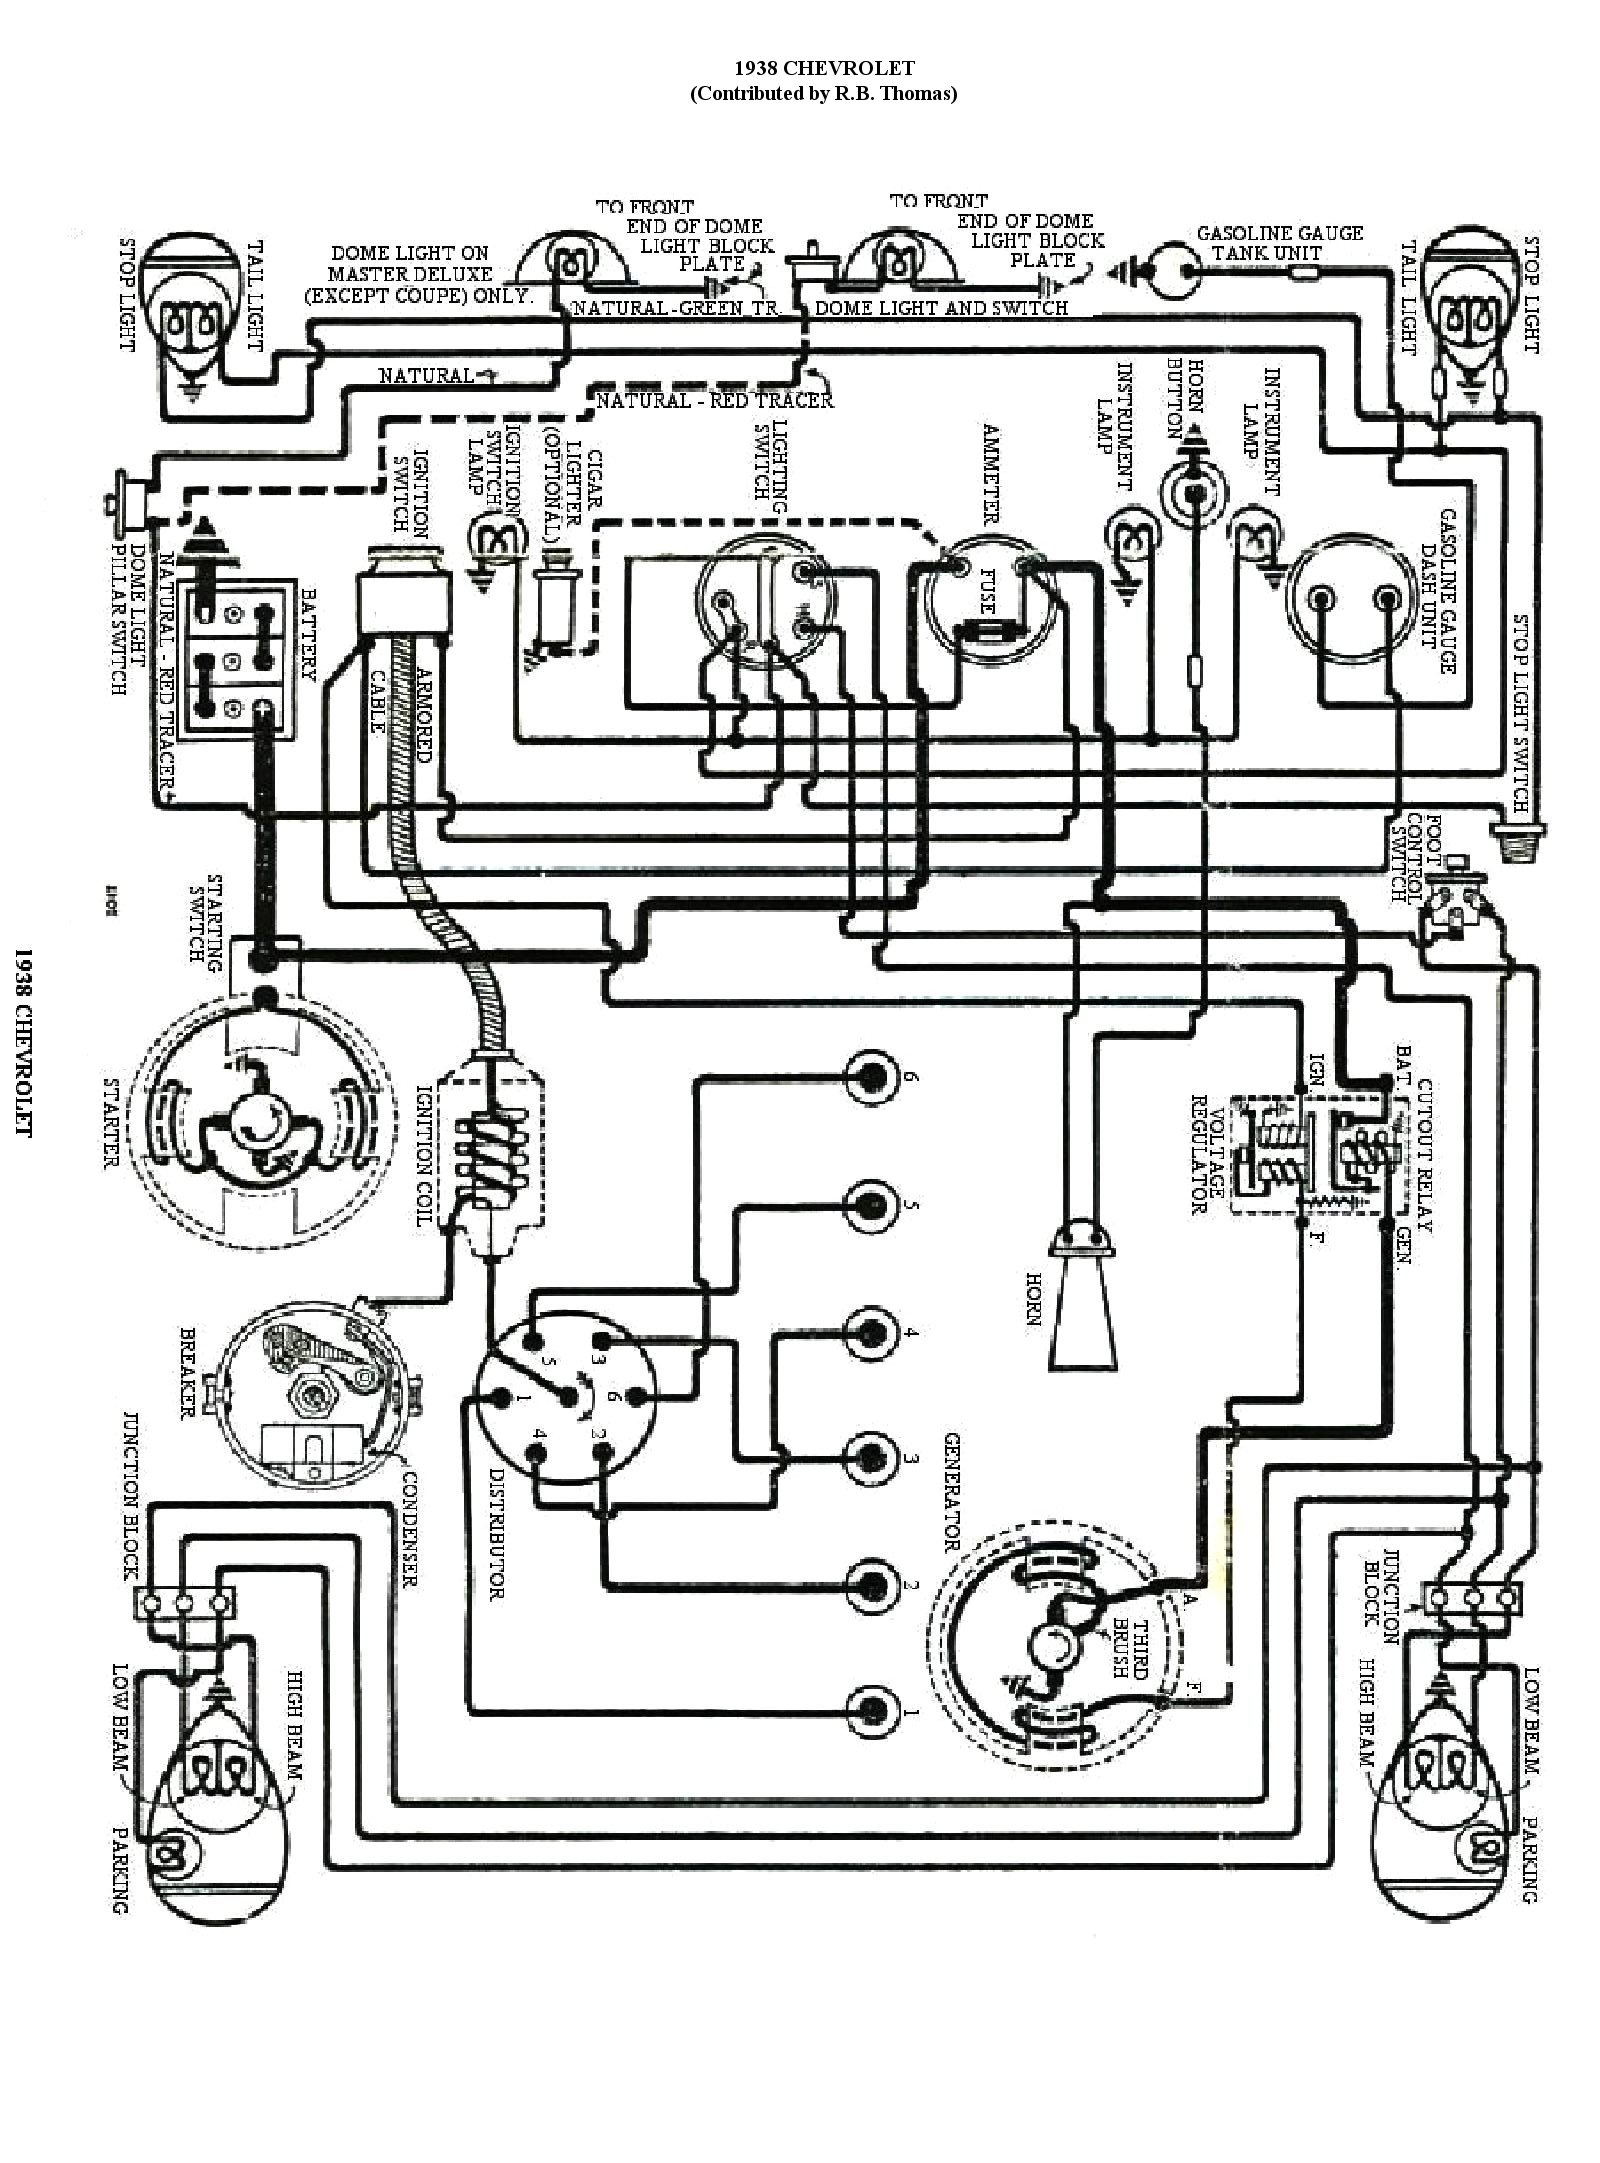 chevy celebrity wiring diagram free picture schematic